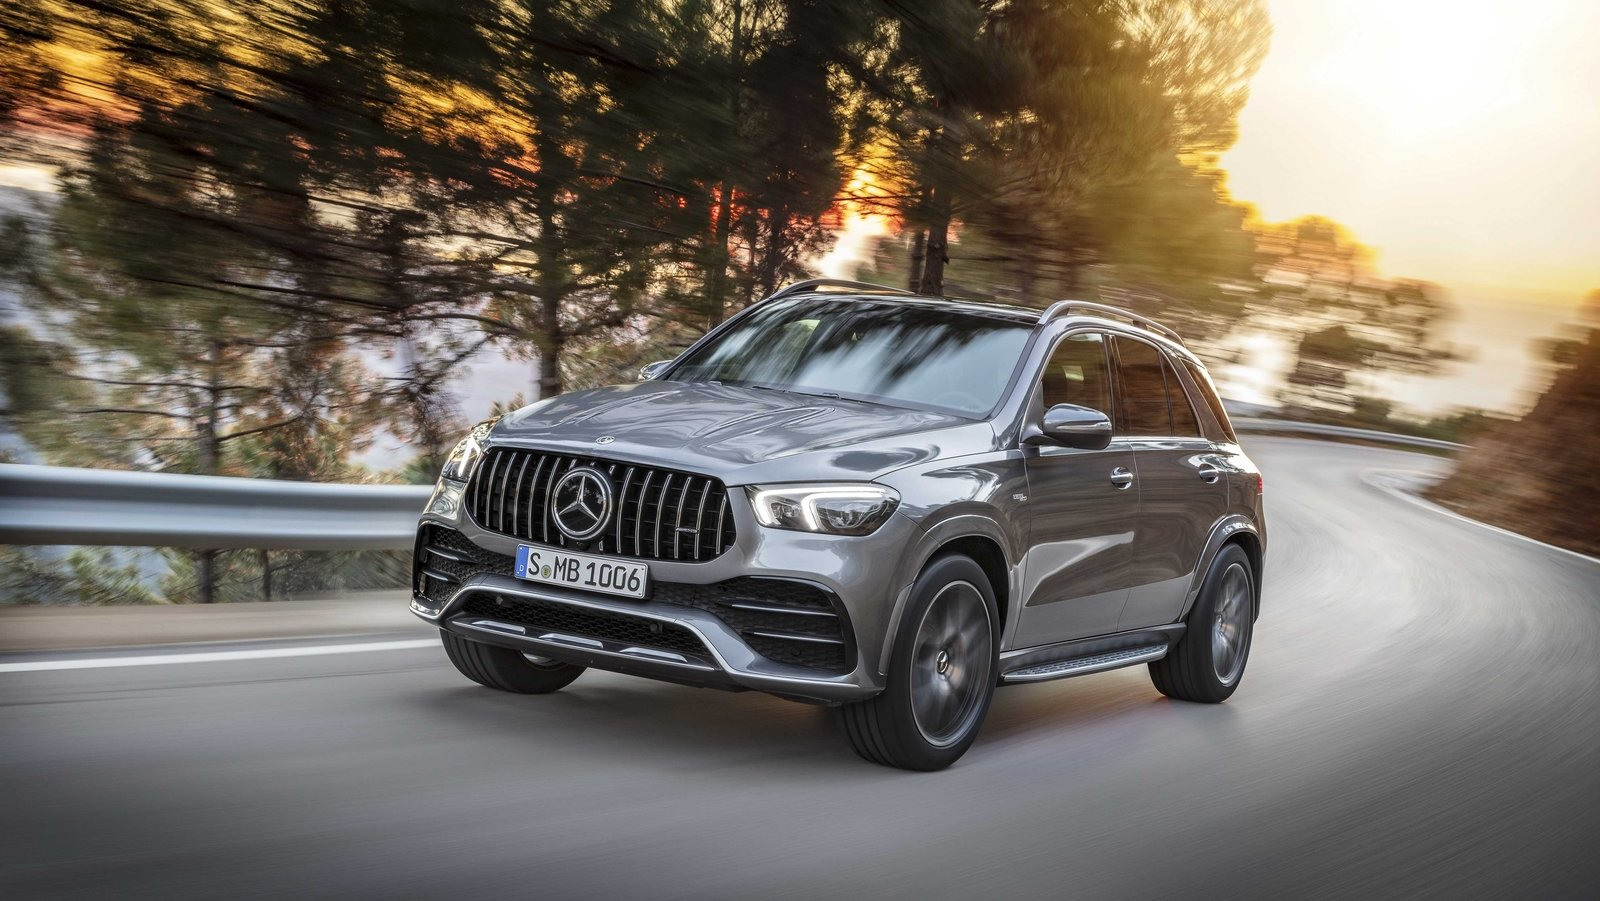 Types Of Suvs >> The 453-Horsepower 2020 Mercedes-AMG GLE53 Is Proof You Don't Need A Sports Car To Have Fun ...